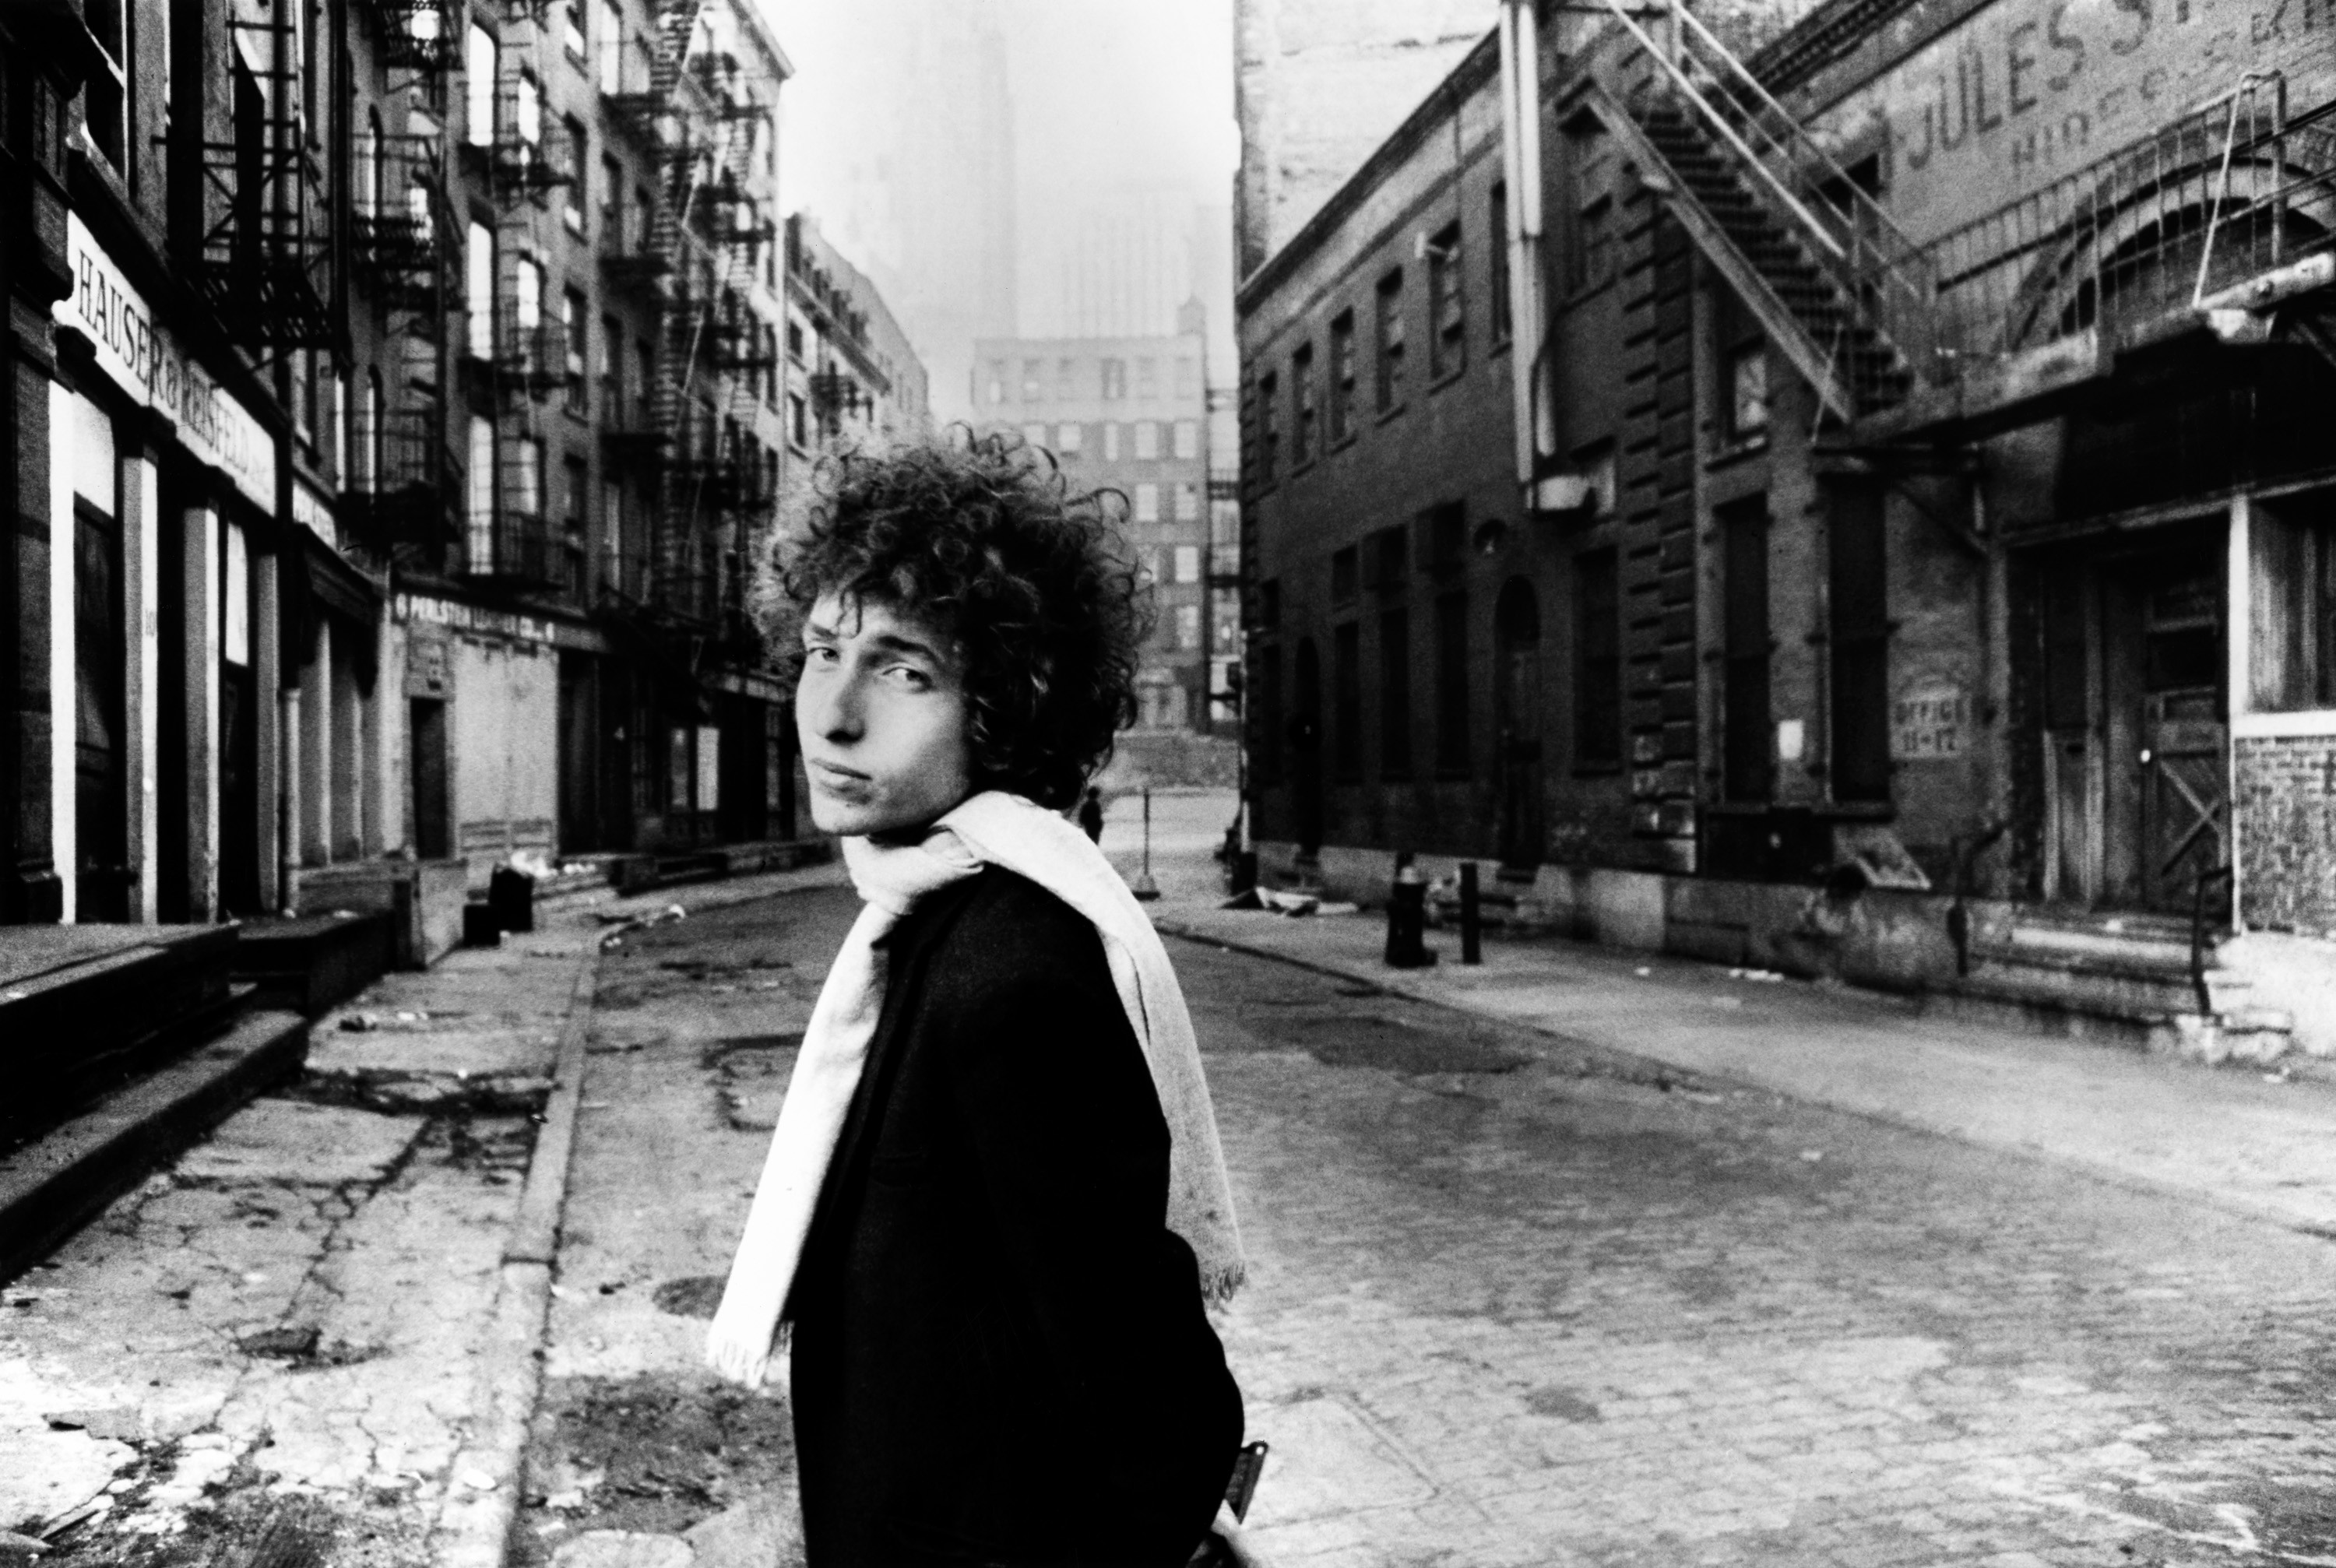 Bob Dylan Photographs: The 5 Best Stories - Stereogum